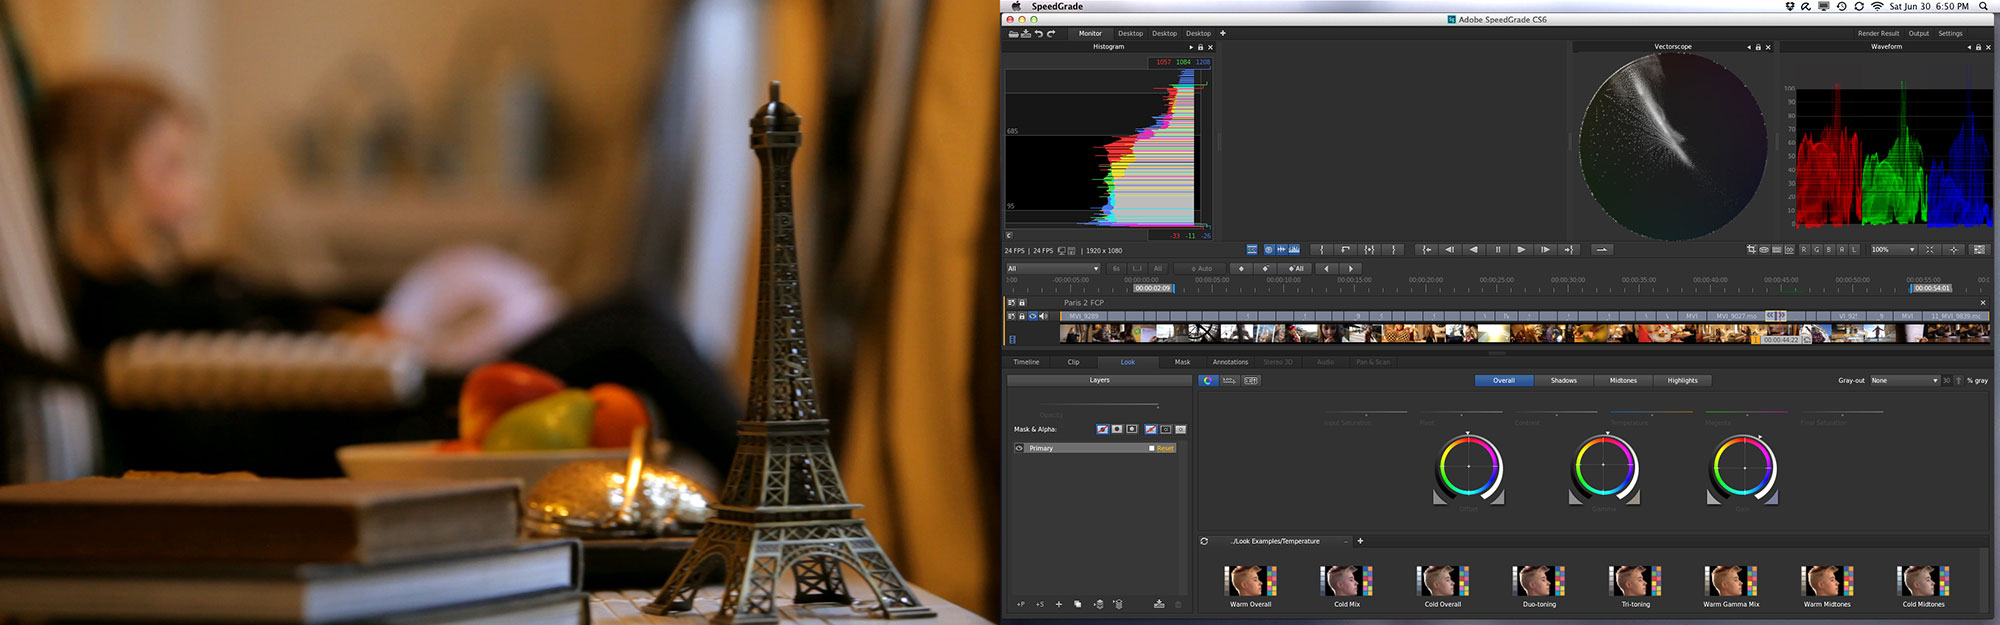 getting started with adobe speedgrade « digitalfilms